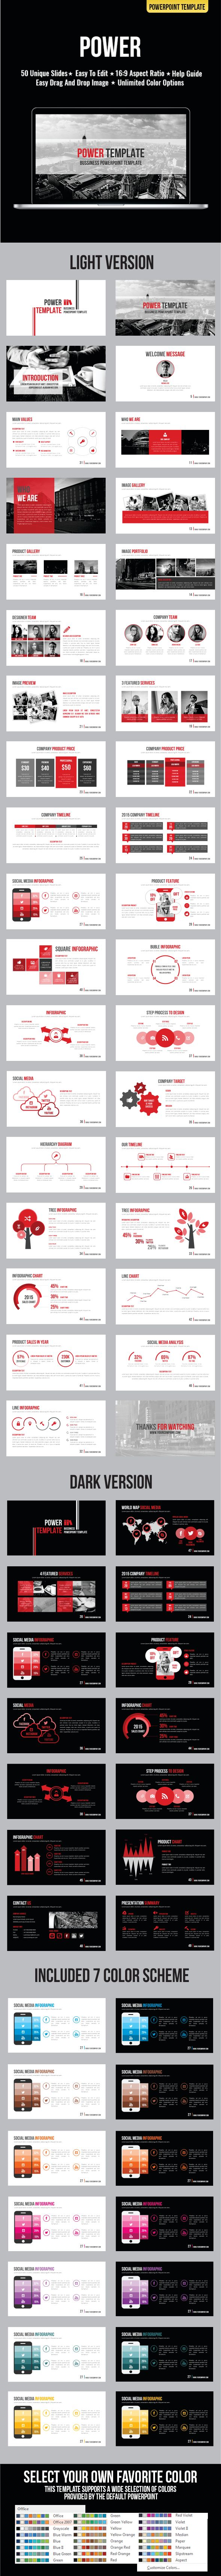 Power template apresentao diagramao e design de apresentao power template business powerpoint templates toneelgroepblik Choice Image